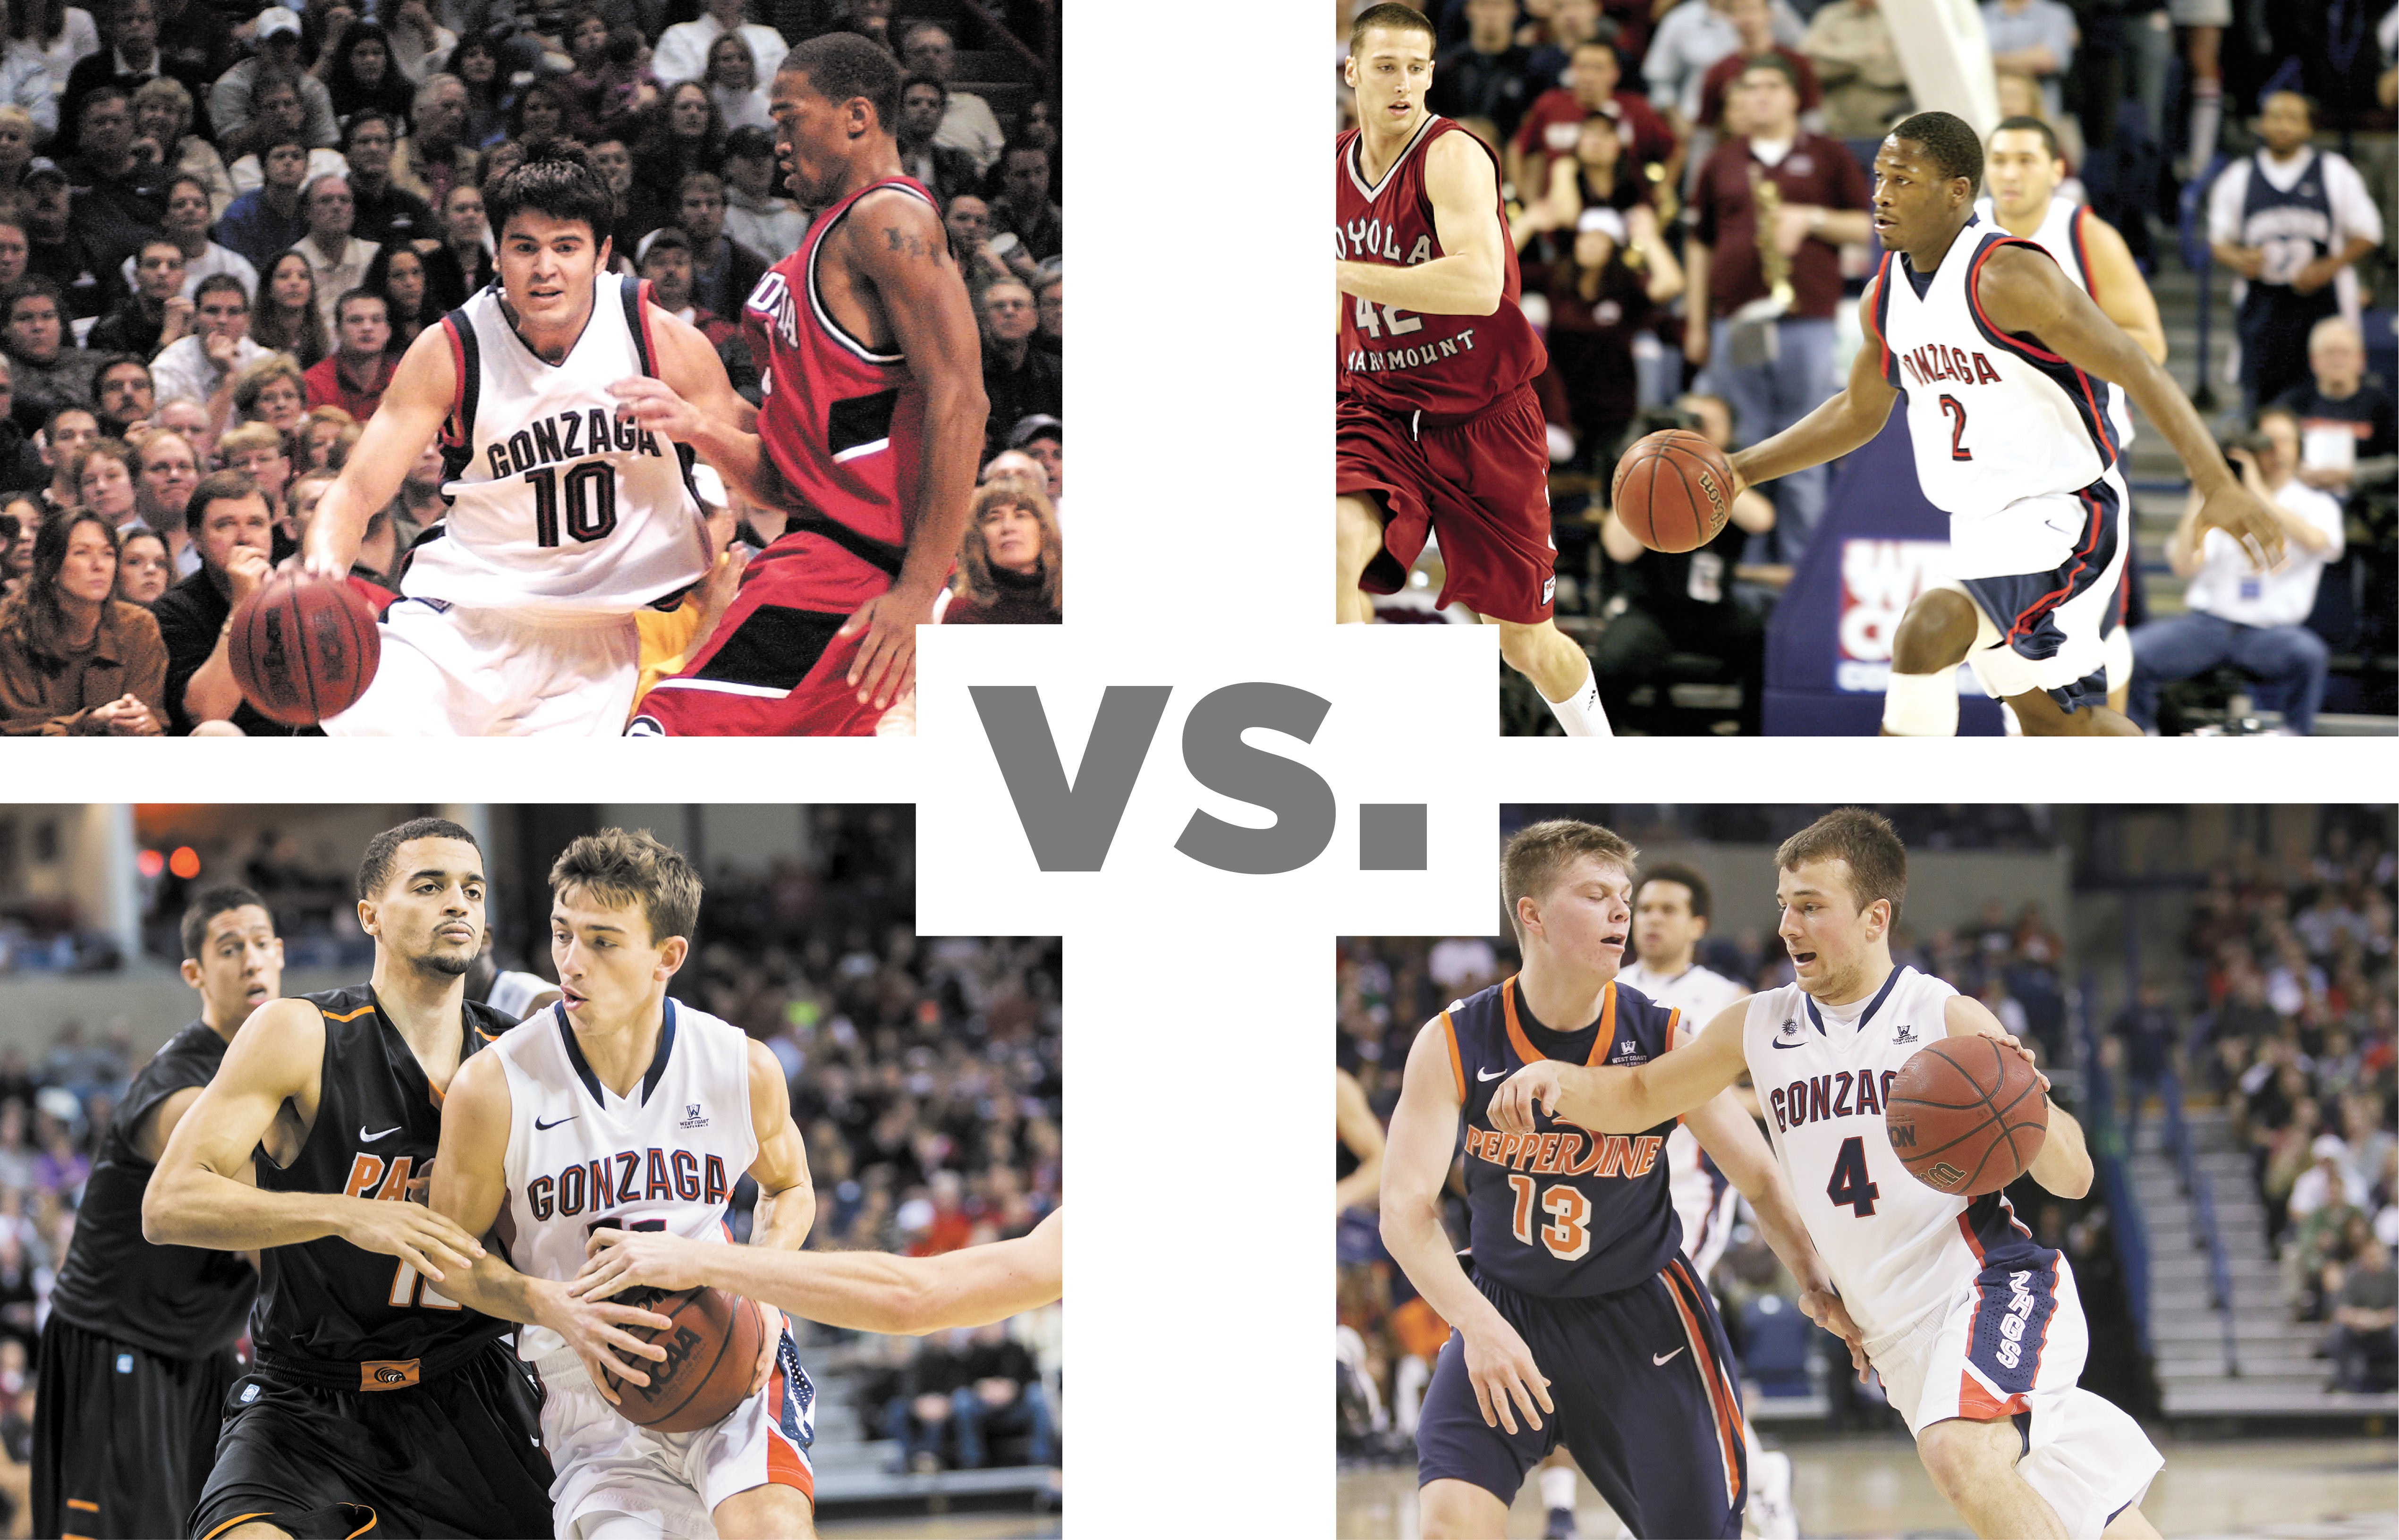 CLOCKWISE FROM TOP LEFT: Blake Stepp, Jeremy Pargo, Kevin Pangos and David Stockton will all be on hand for Friday's Gonzaga alumni game.